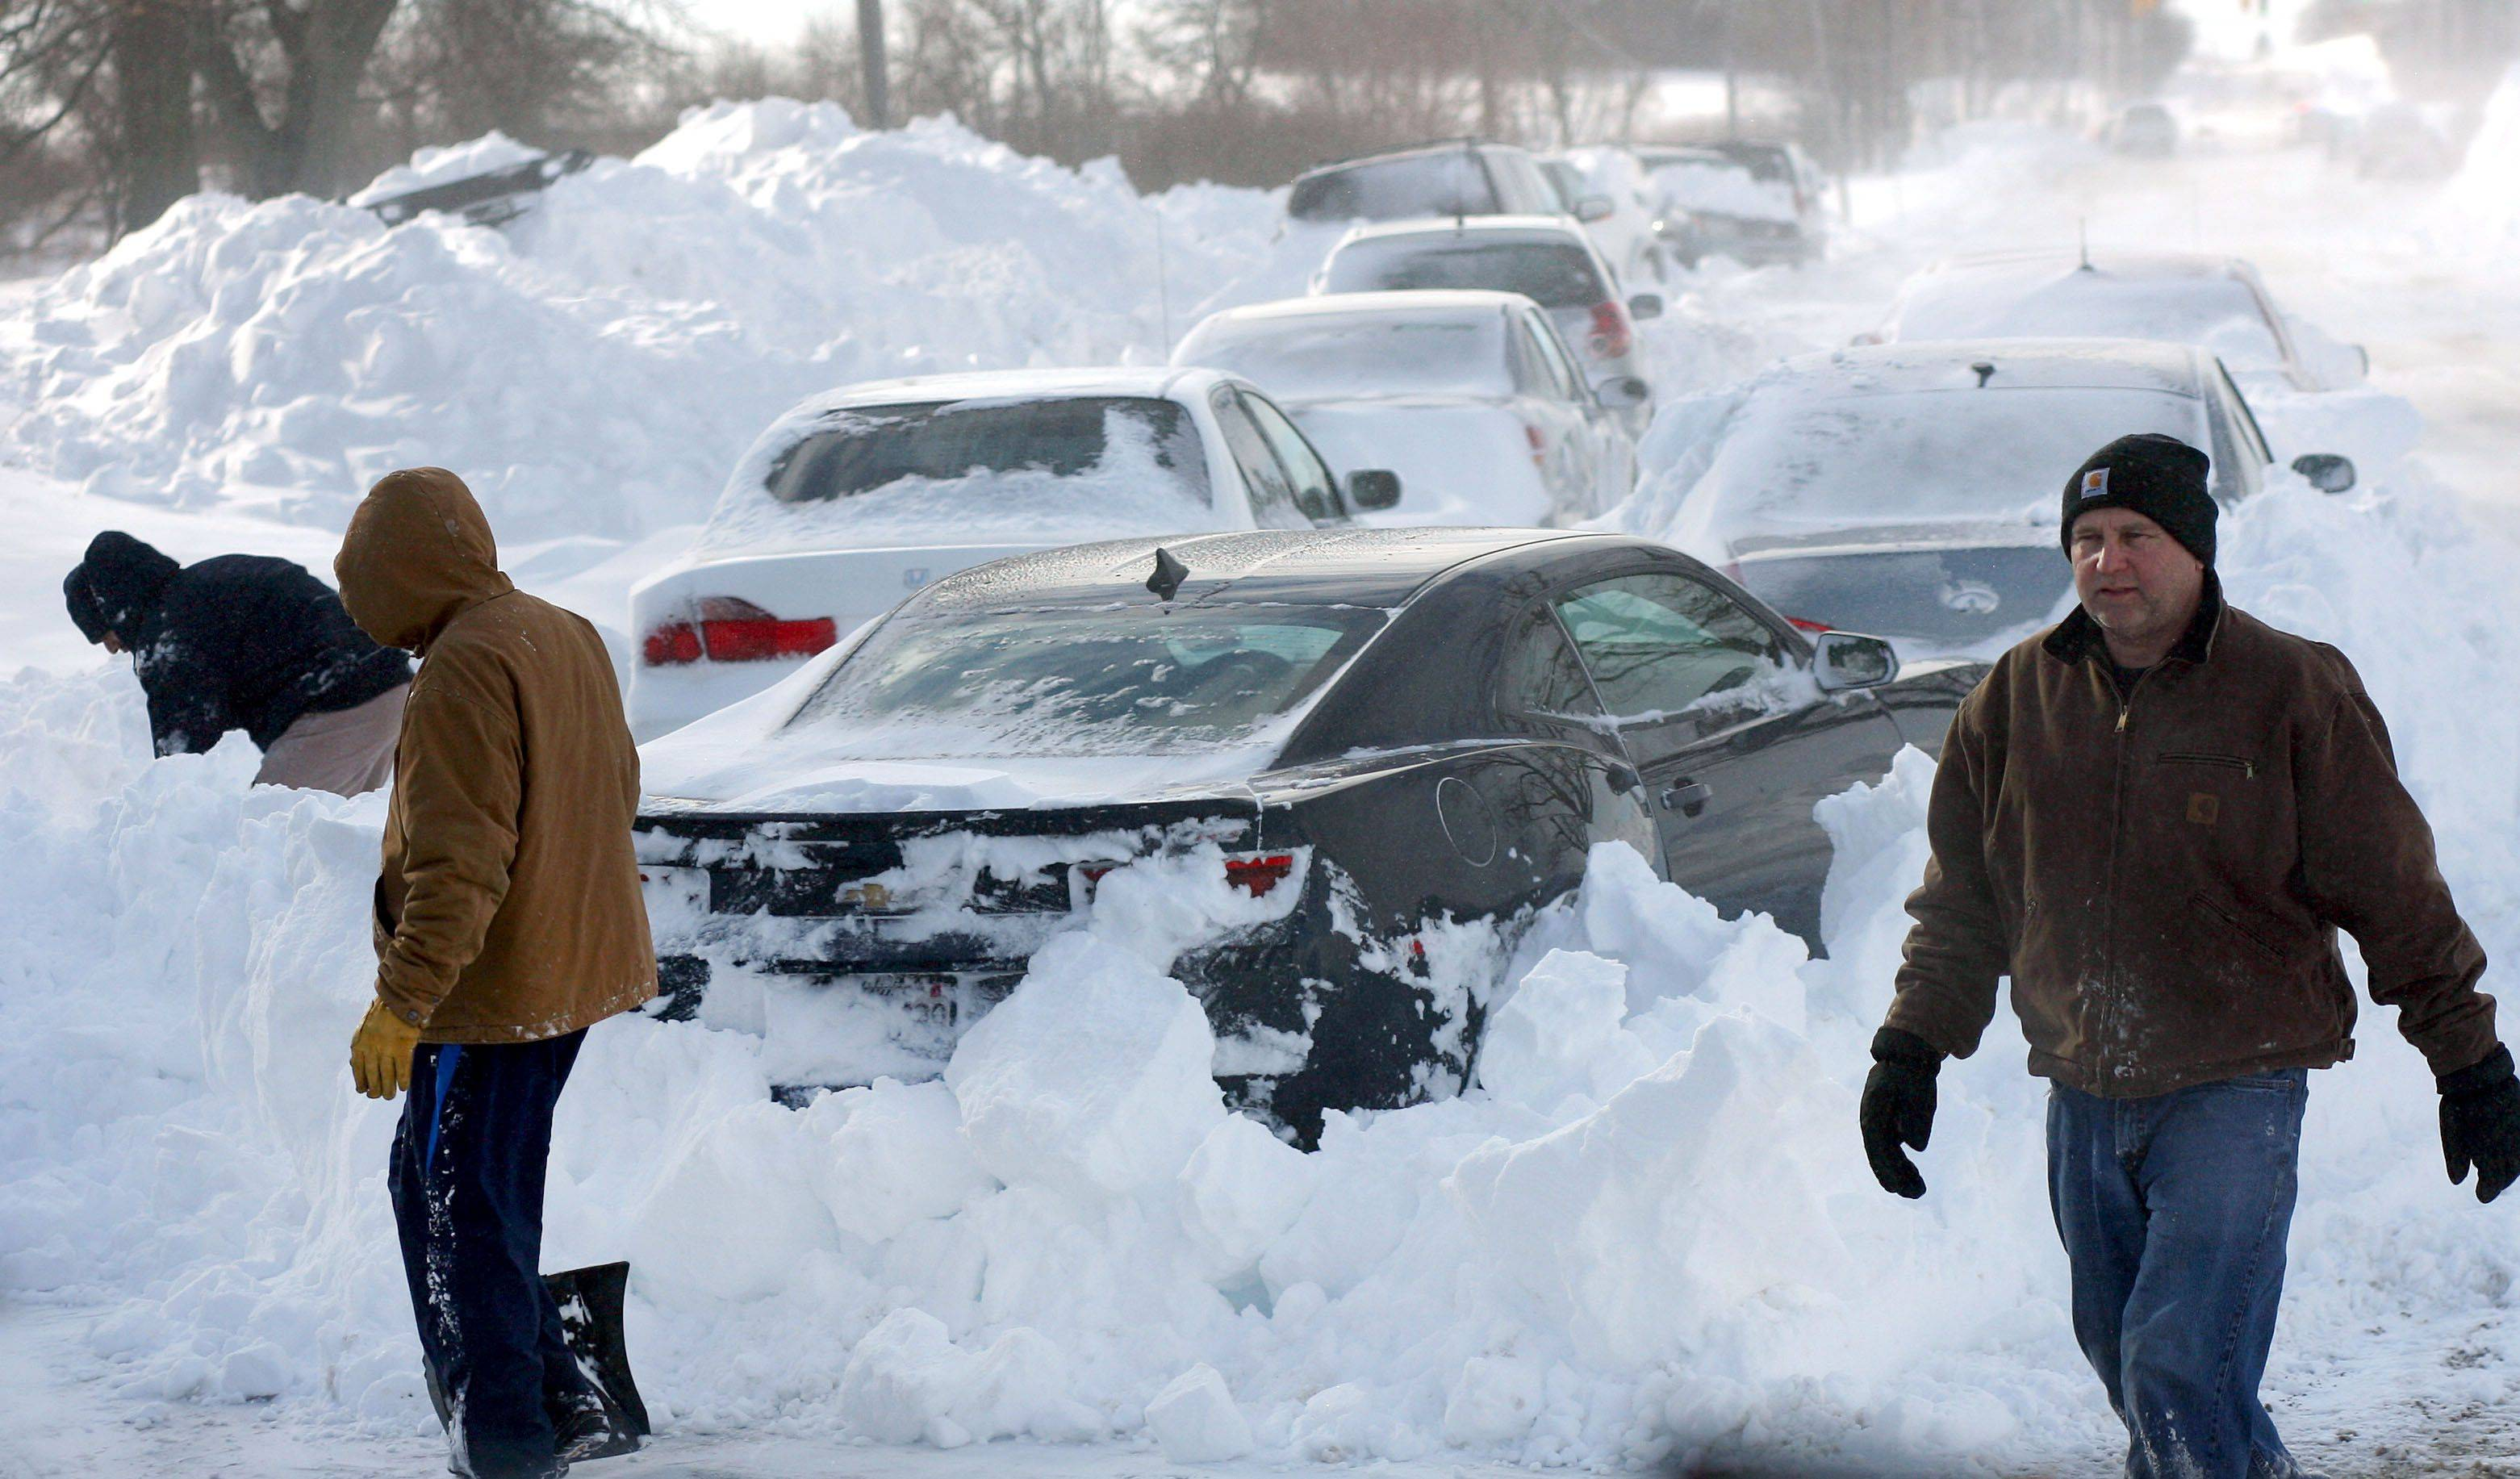 Many motorists became stranded on roads in the Mundelein area during February's blizzard.